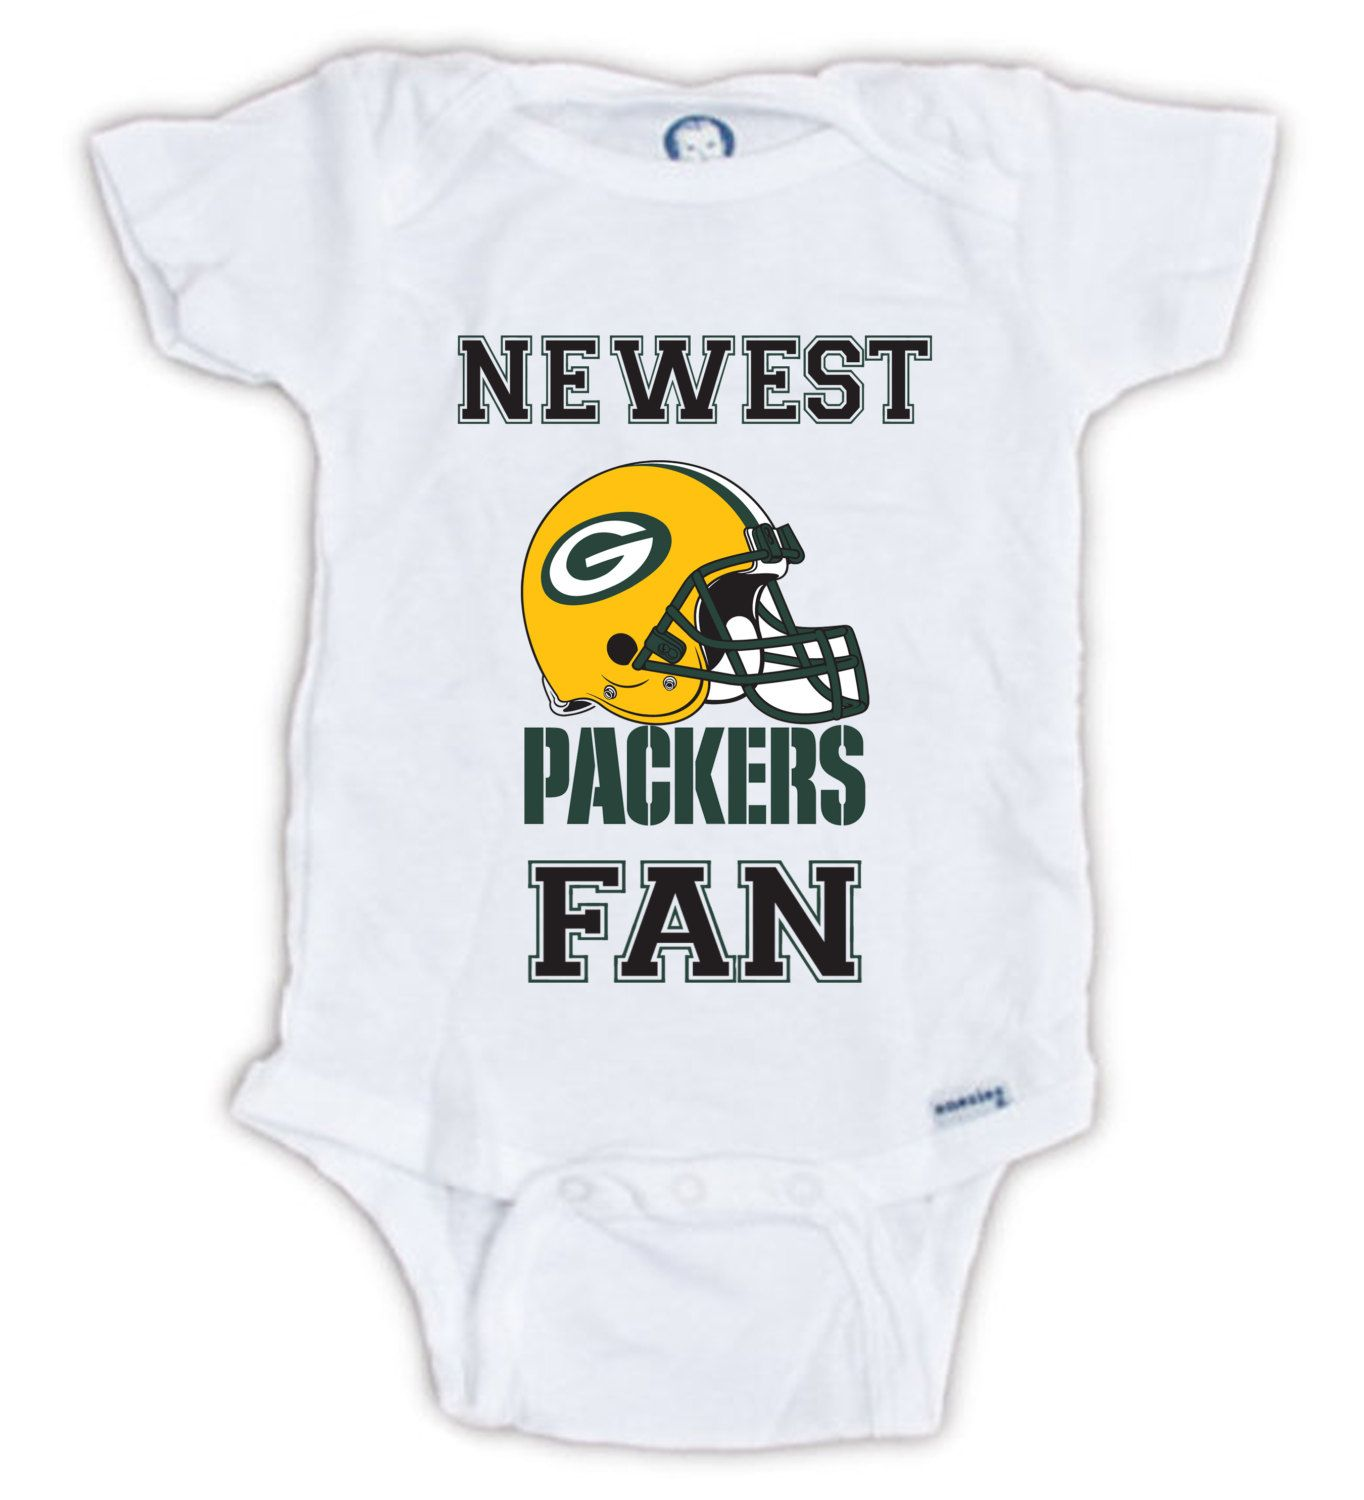 5589e1978 Green Bay PACKERS FAN Baby Onesie, Baby Bodysuit, Football Onesie, Great  Baby Shower Gift, Mother's Day, Father's Day, Packers Fan Onesie by  JujuApparel on ...